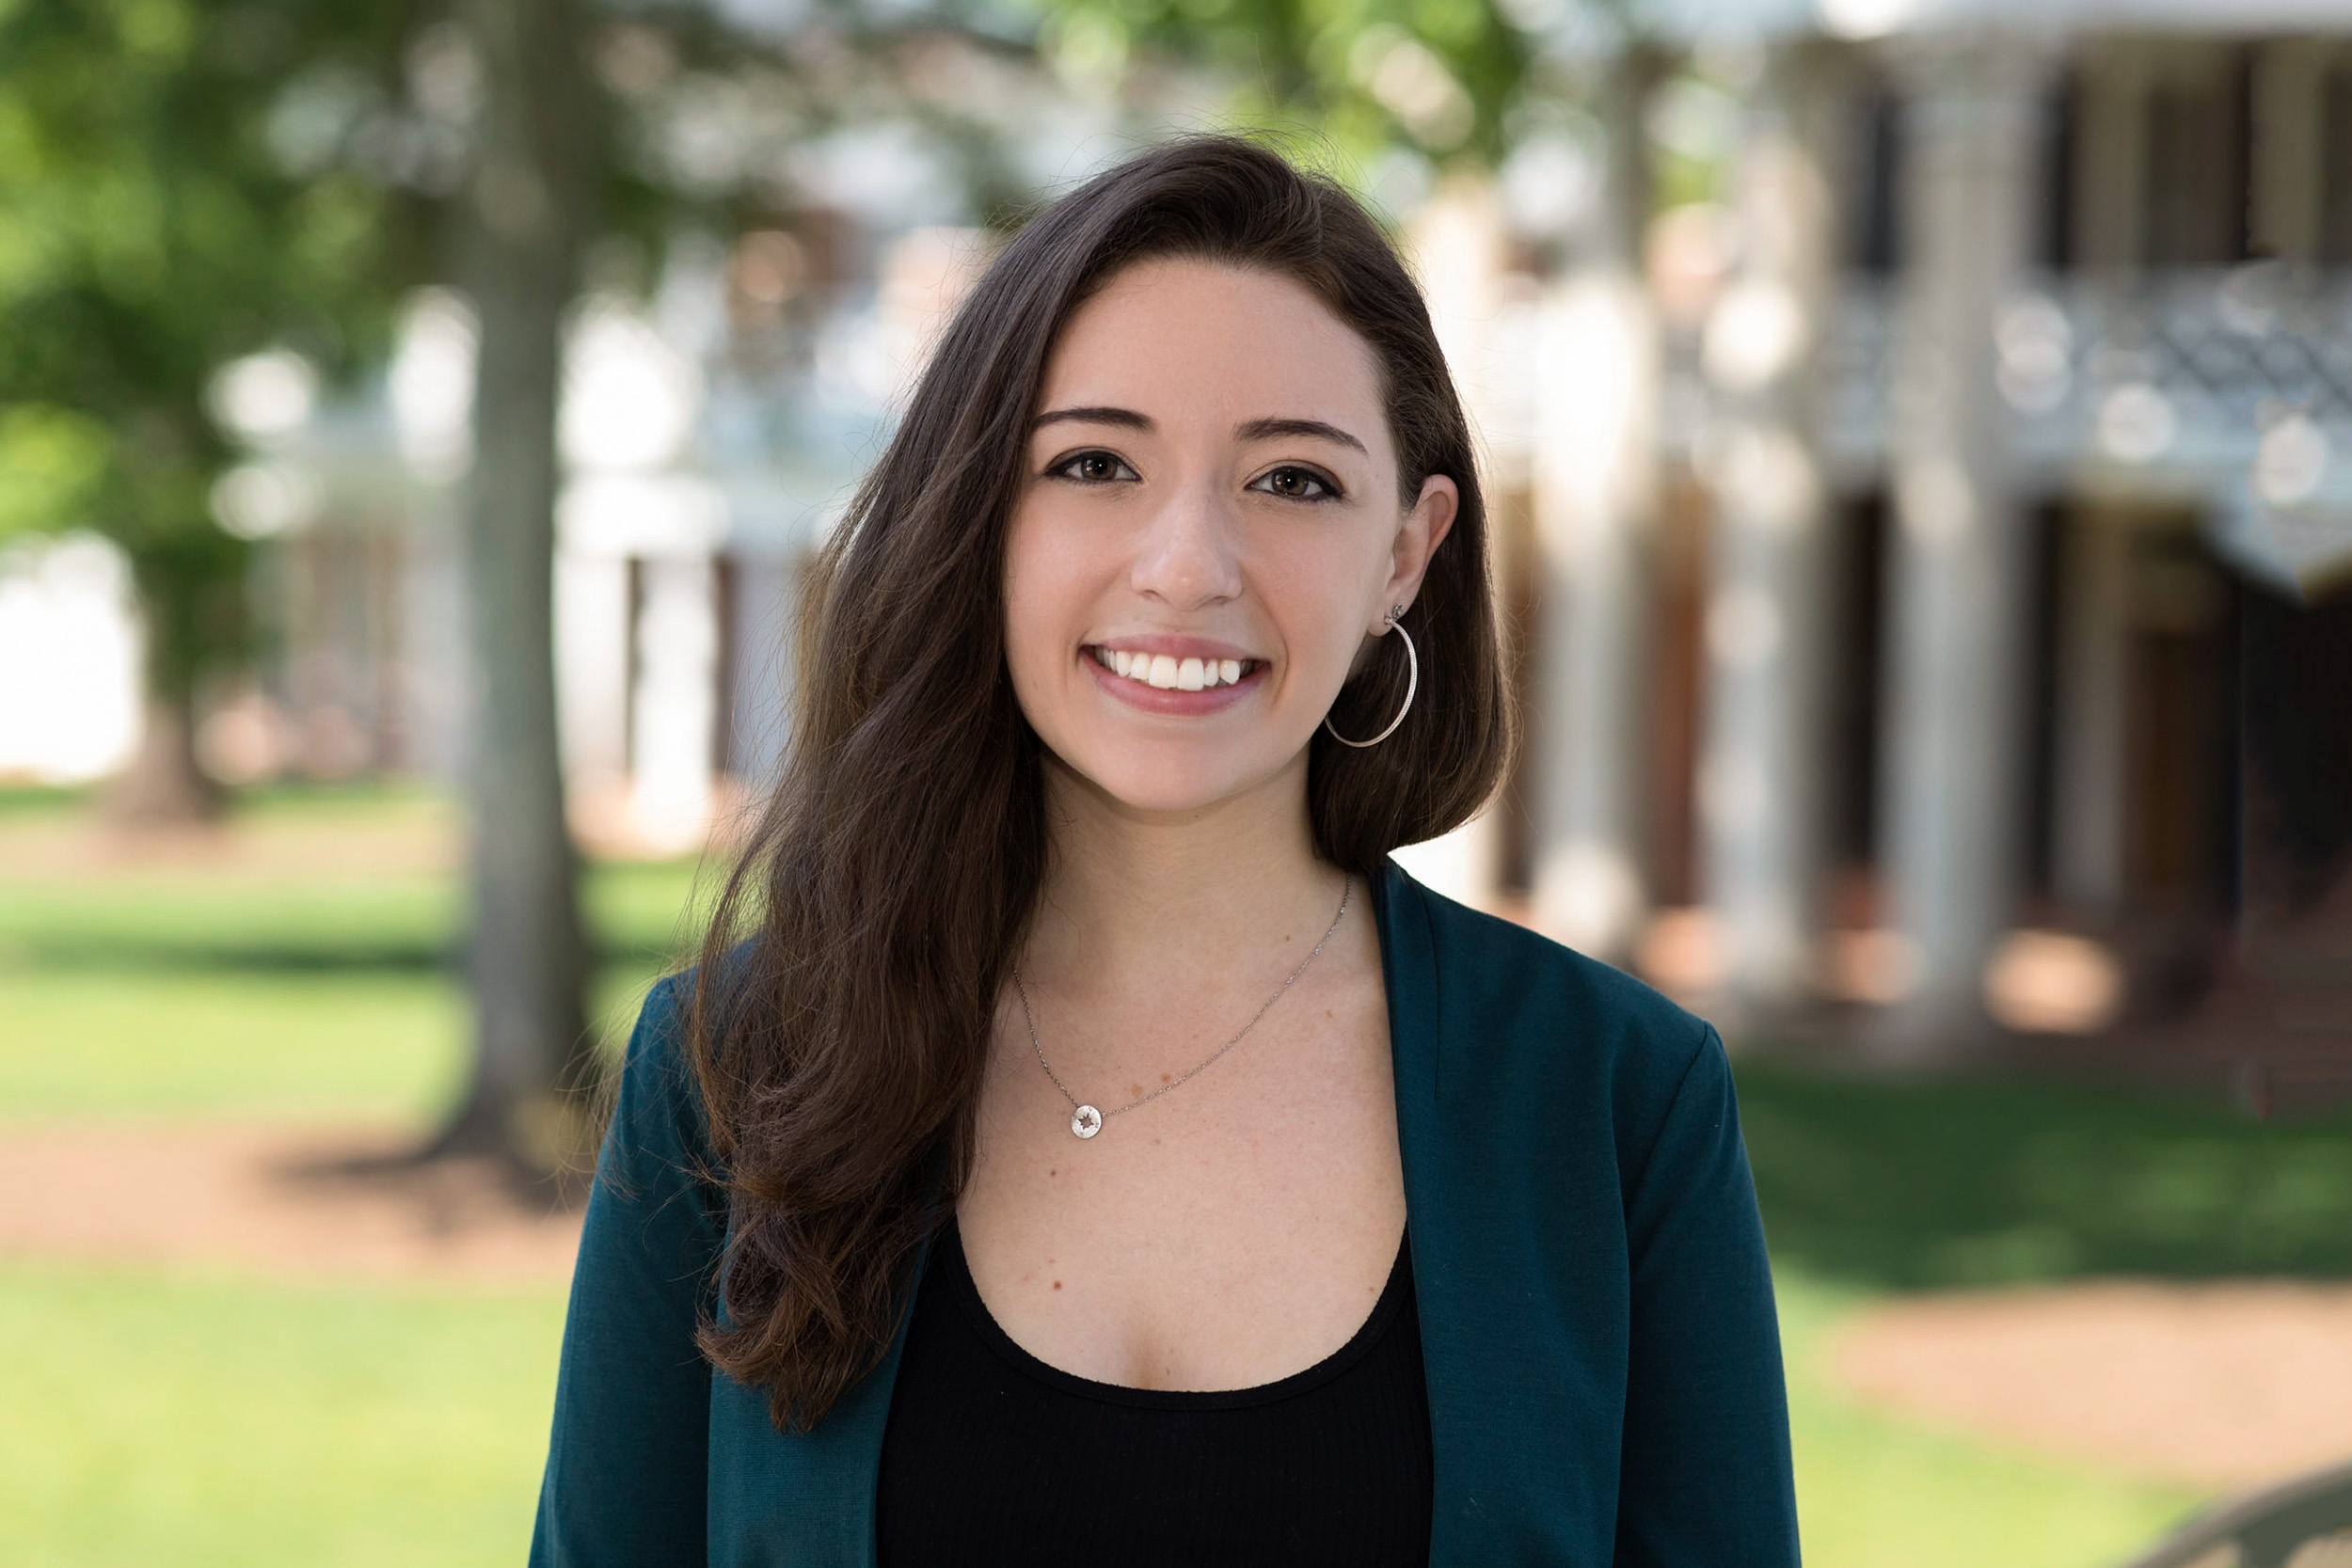 Madison Hecht will research the increased risk of sexual victimization among autistic adolescents in Sydney, Australia.